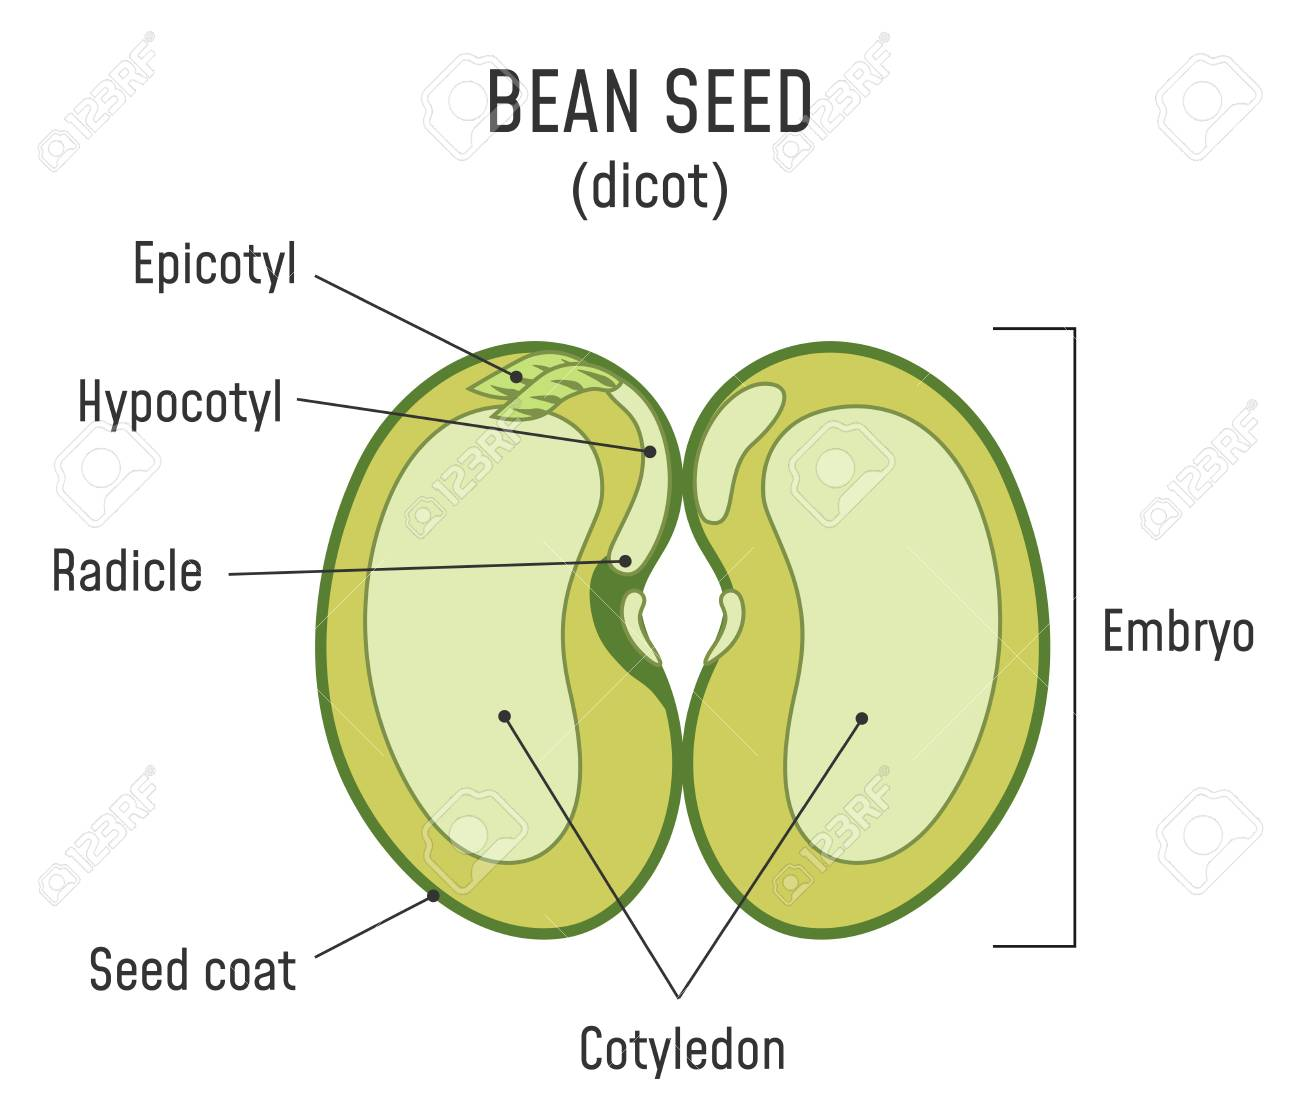 hight resolution of bean seed structure anatomy of grain dicot seed diagram royalty dicot seed structure diagram bean seed